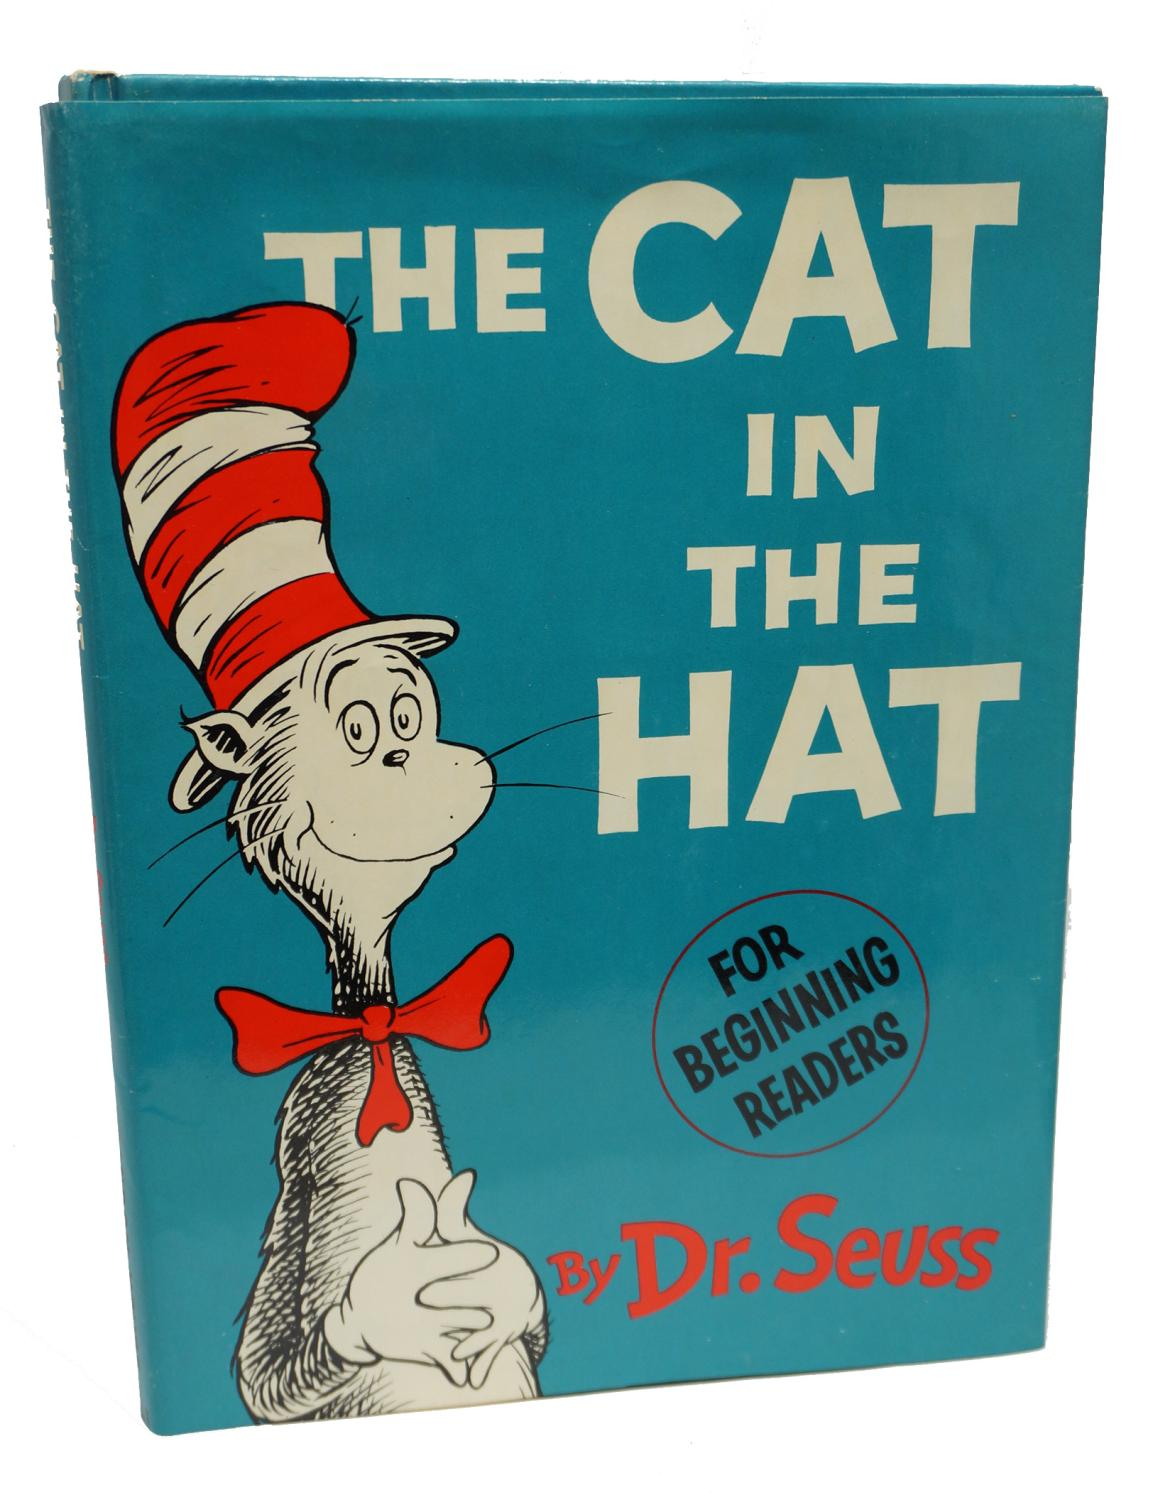 c0e443e5 The Cat in the Hat by Dr. Seuss: Random House Hardcover - 1st ...